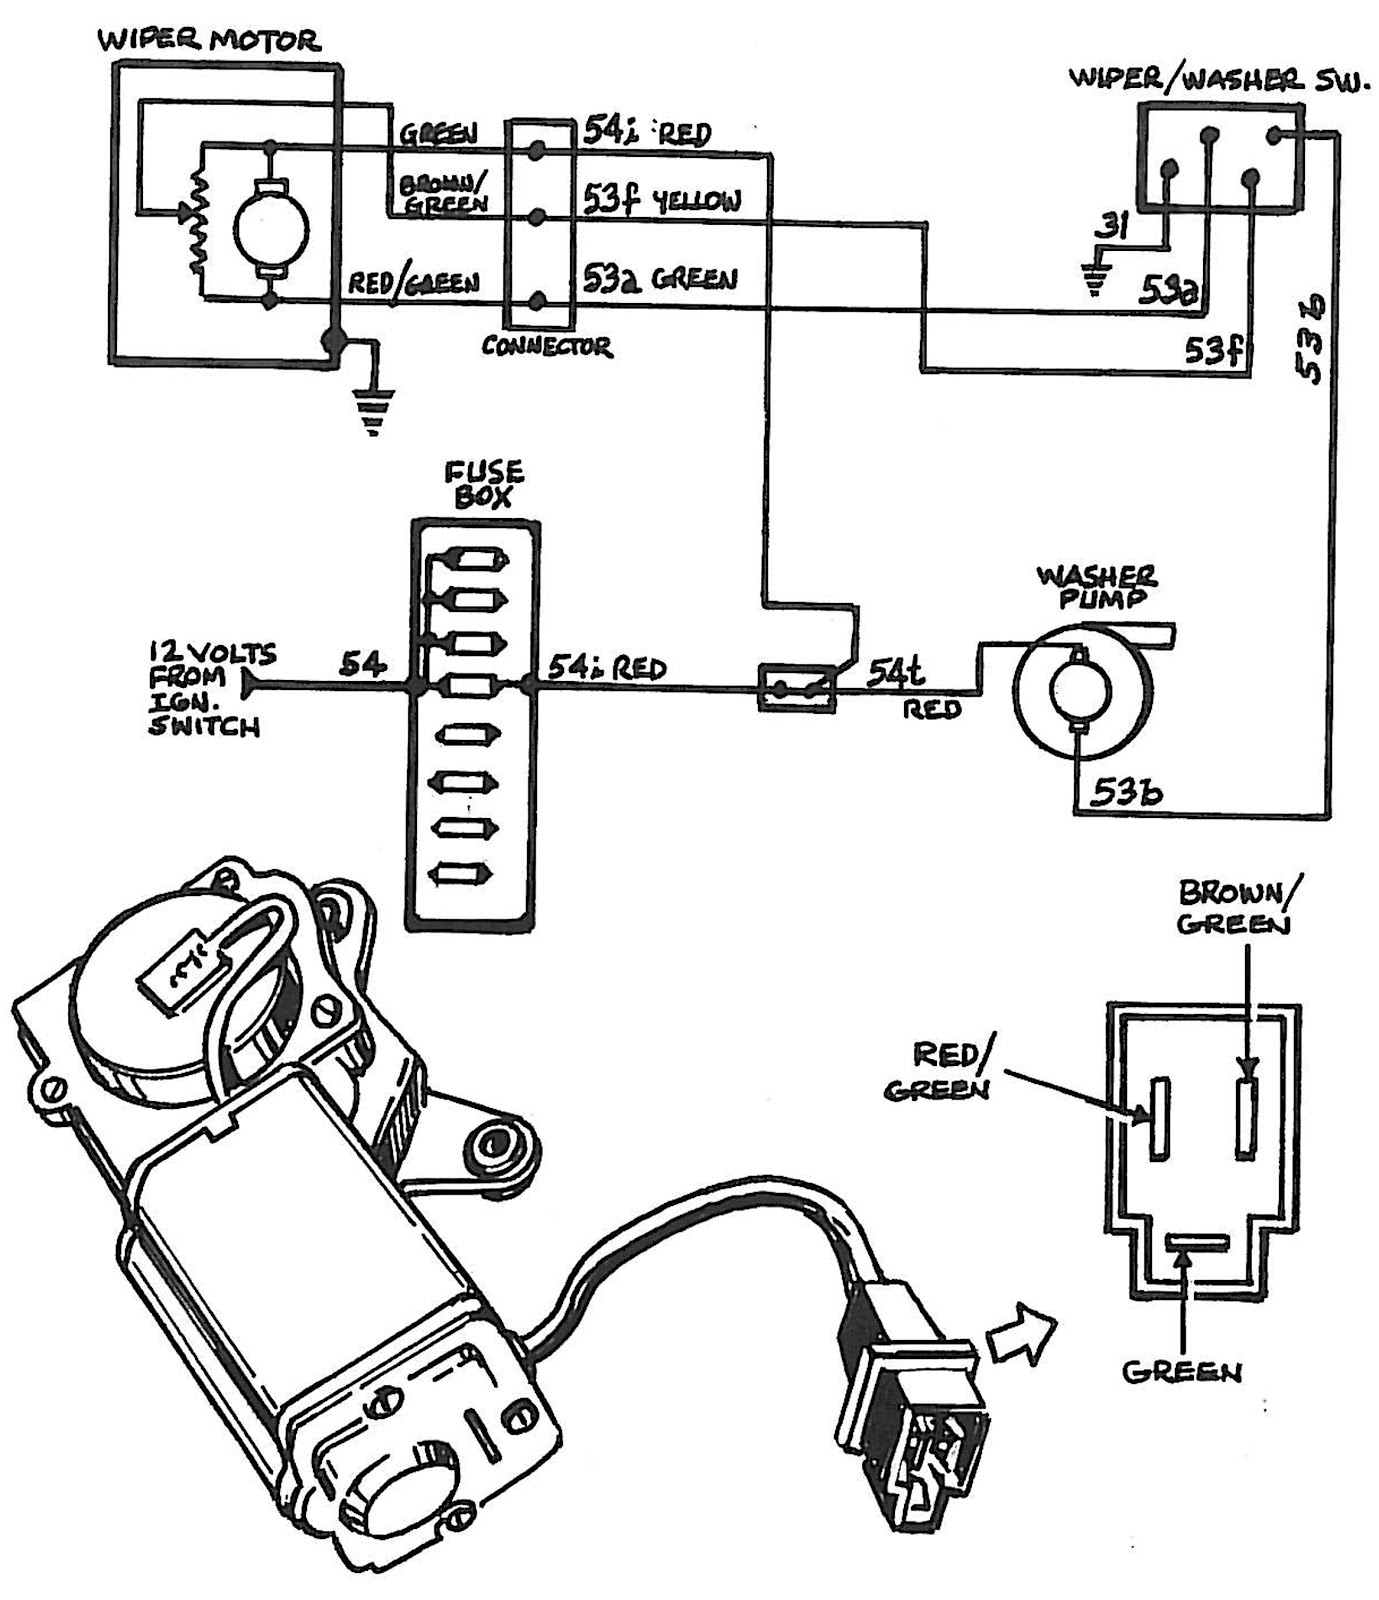 1962 Chevy Impala Wiper Motor Wiring Diagram on 3 wire alternator wiring diagram bmw